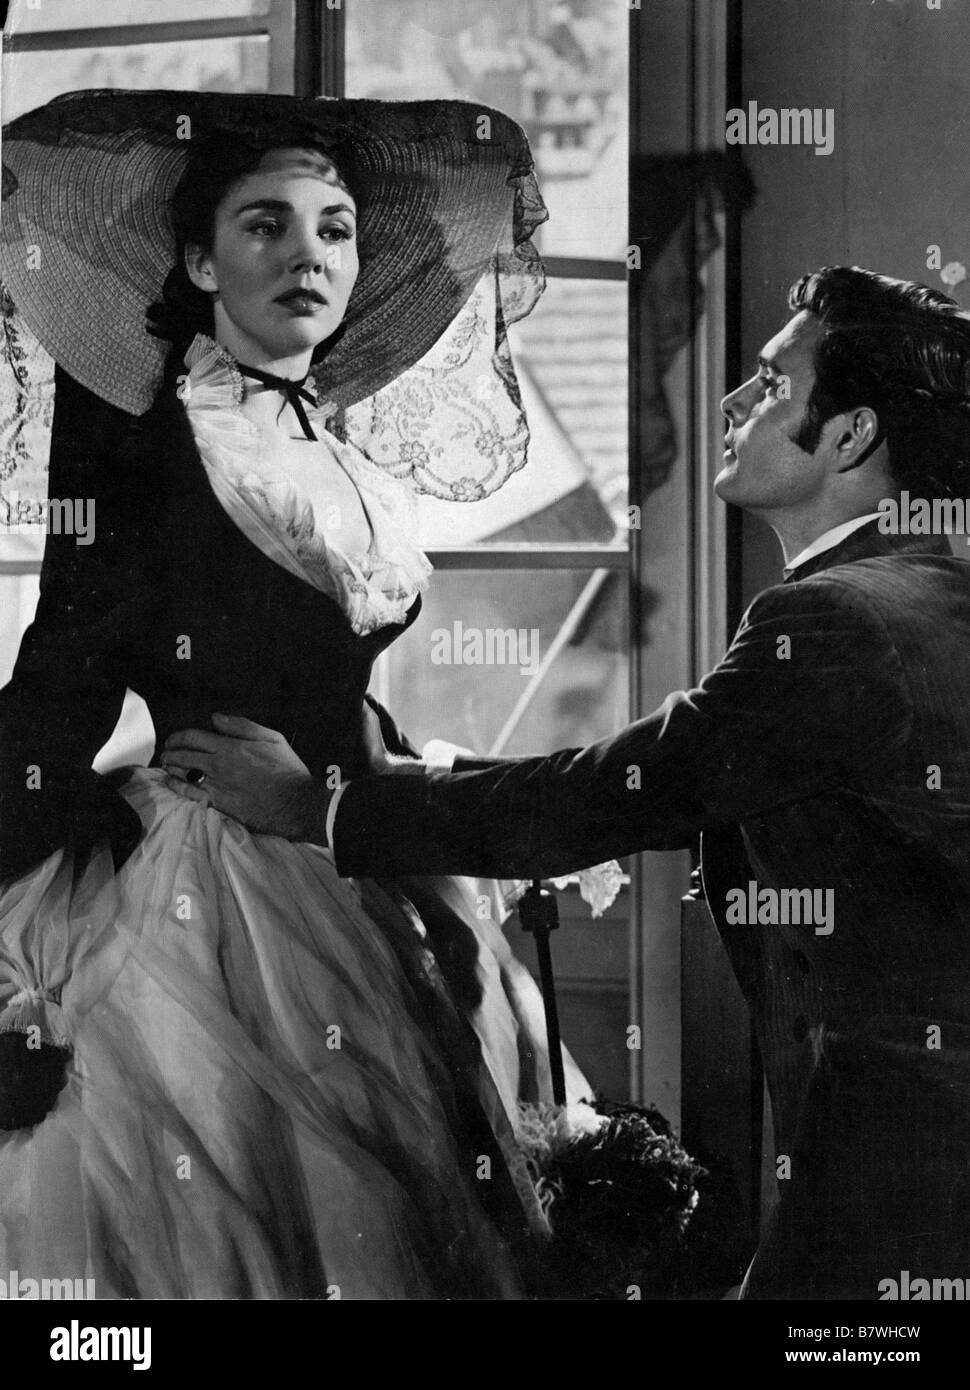 Madame Bovary Year 1949 Usa Director Vincente Minnelli Louis Stock Photo Alamy